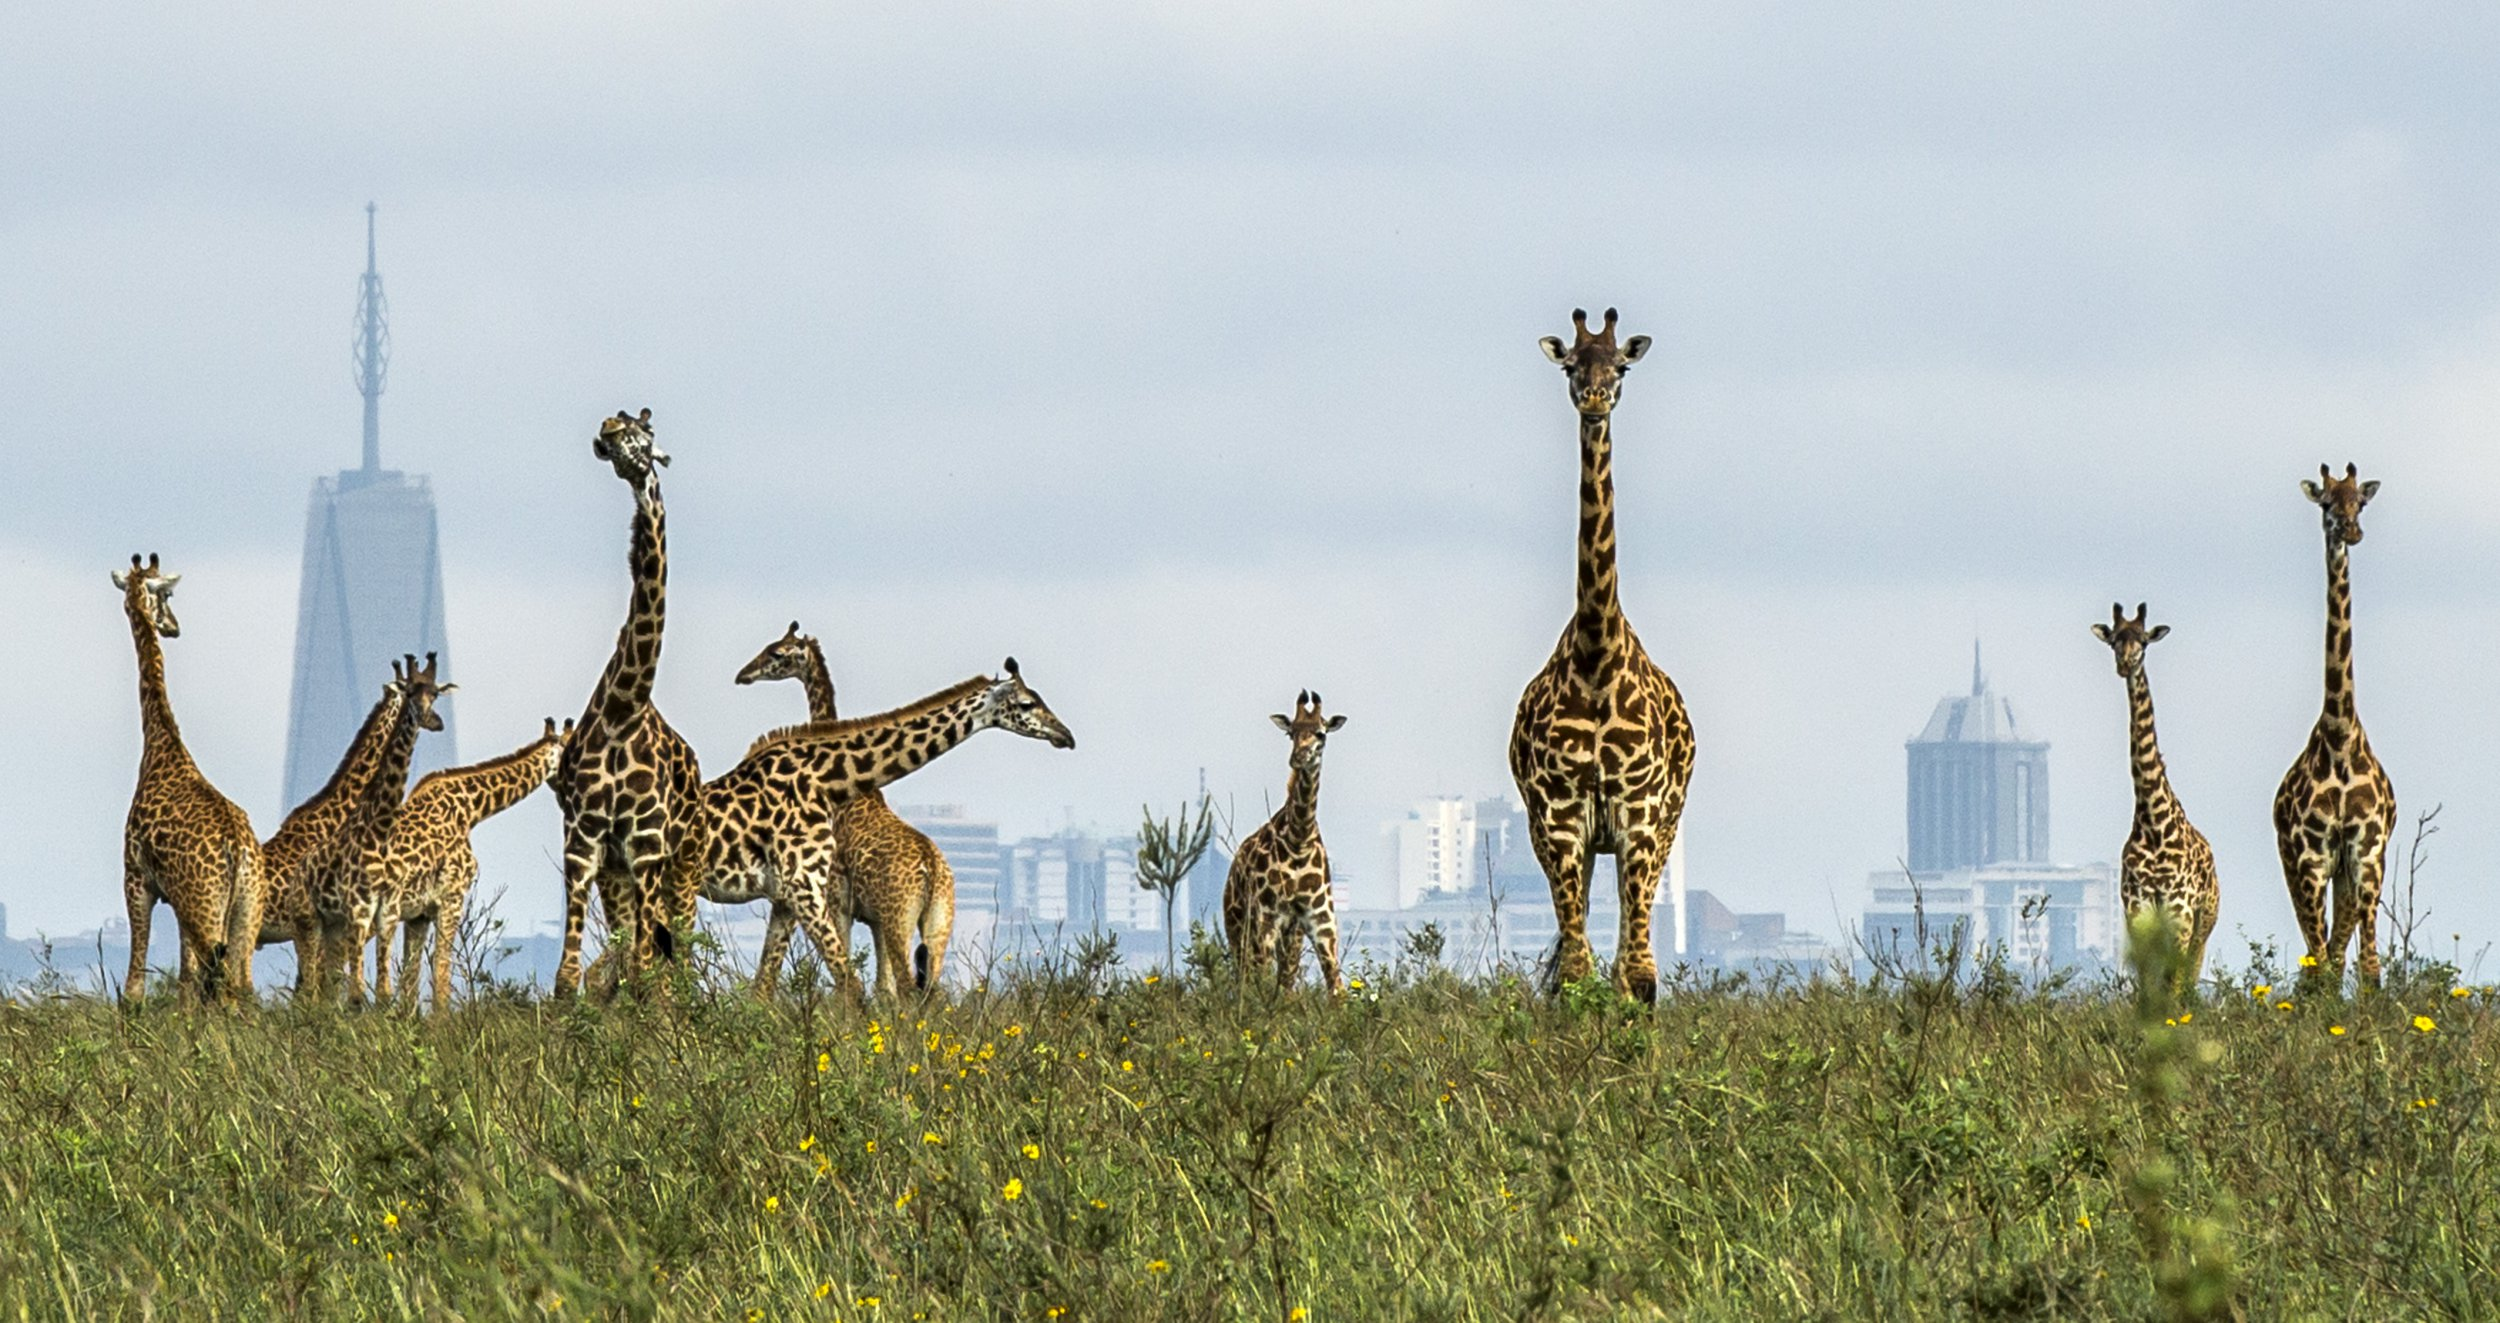 PIC BY PARAS CHANDARIA / CATERS NEWS - (PICTURED PIC TAKEN 15/11/17 )These majestic giraffes are used to being the tallest thing around - but theyre given a run for their money when they look out on a city full of skyscrapers. In a truly one-of-a-kind image, talented photographer Paras Chanaria managed to capture the beautiful animals strolling within metres of the skyscrapers in Nairobi - causing quite the contrast. The herd of giraffe were found in Nairobi National park, which borders the capital city of Nairobi. Its rare for animals who live in the bush to come onto the outskirts of the park - but luckily, Paras, 34, was there just at the right moment. SEE CATERS COPY